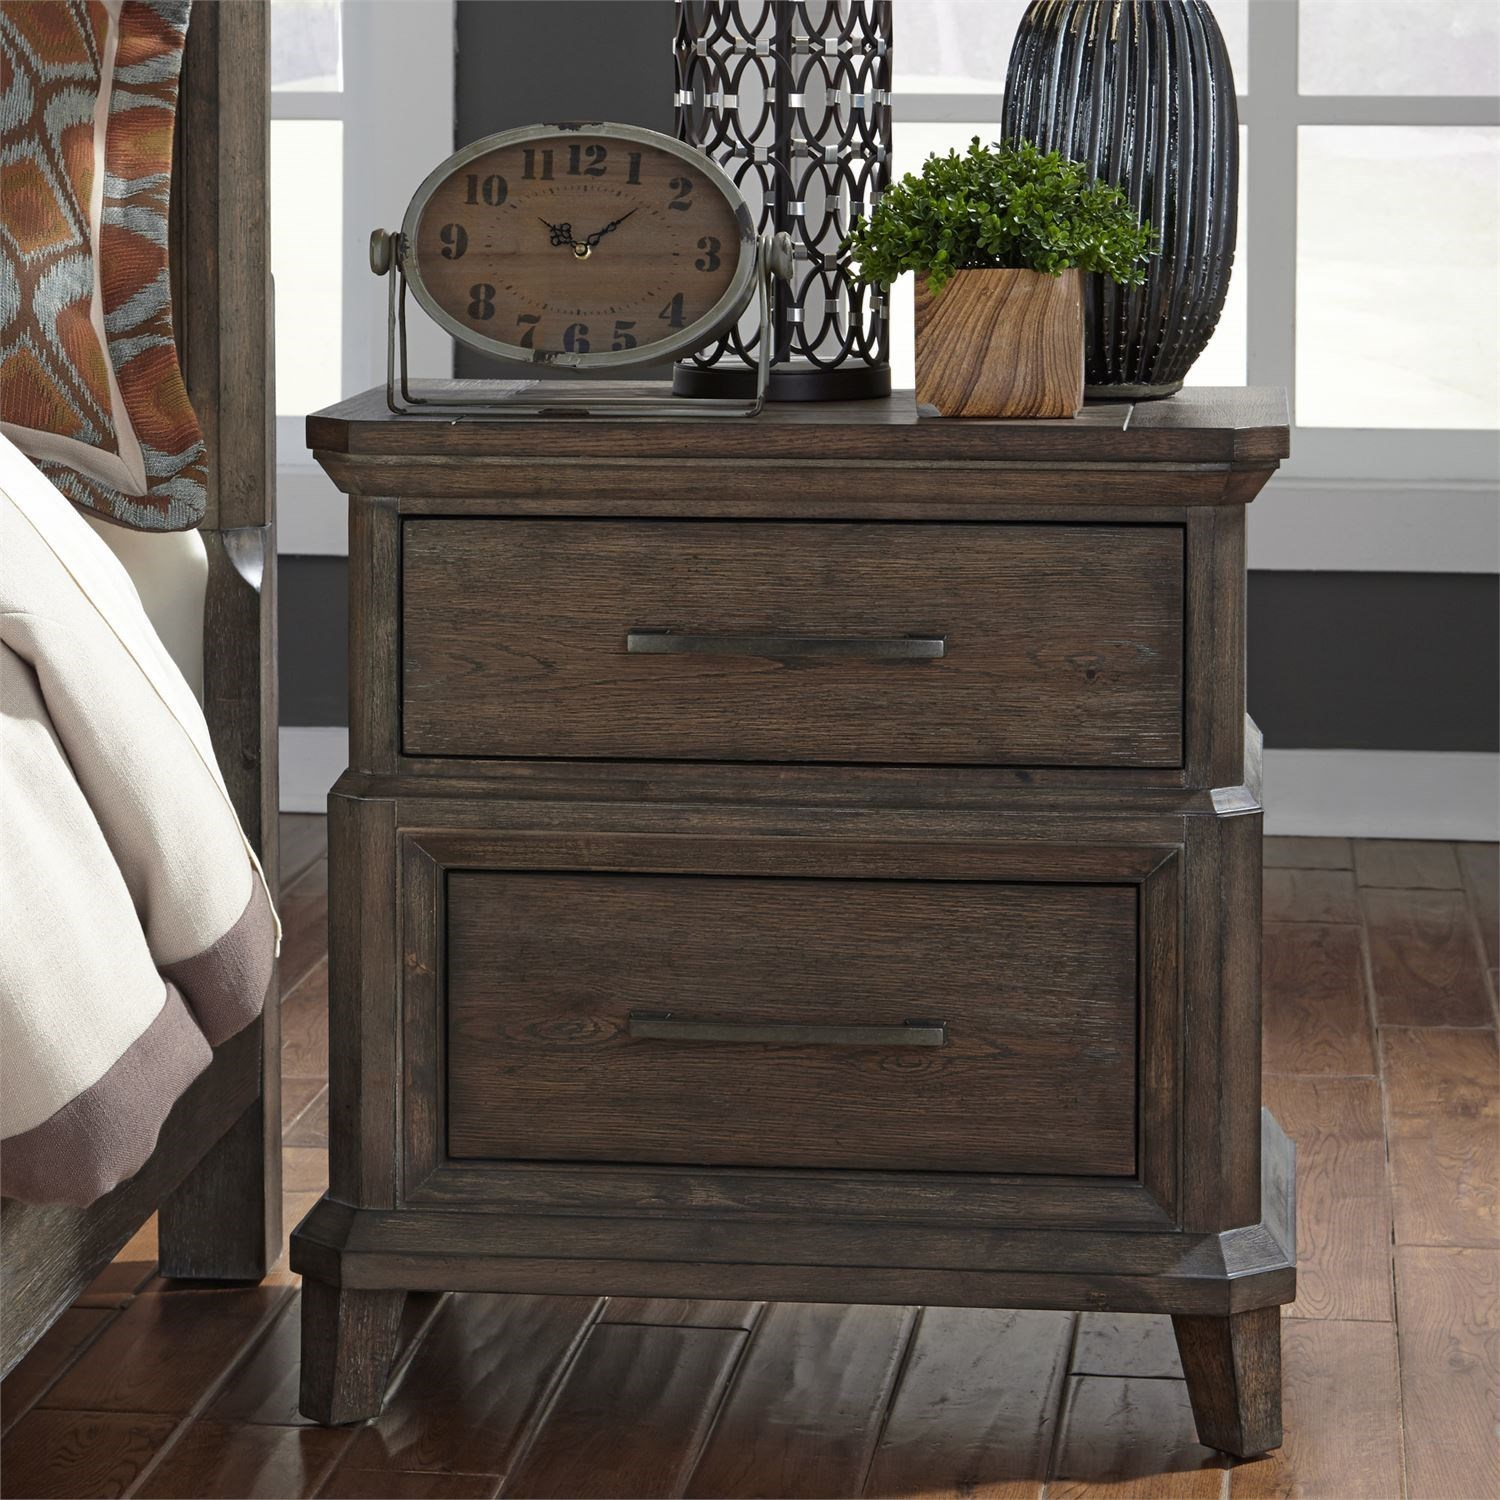 Artisan Prairie 2 Drawer Nightstand by Liberty Furniture at Catalog Outlet